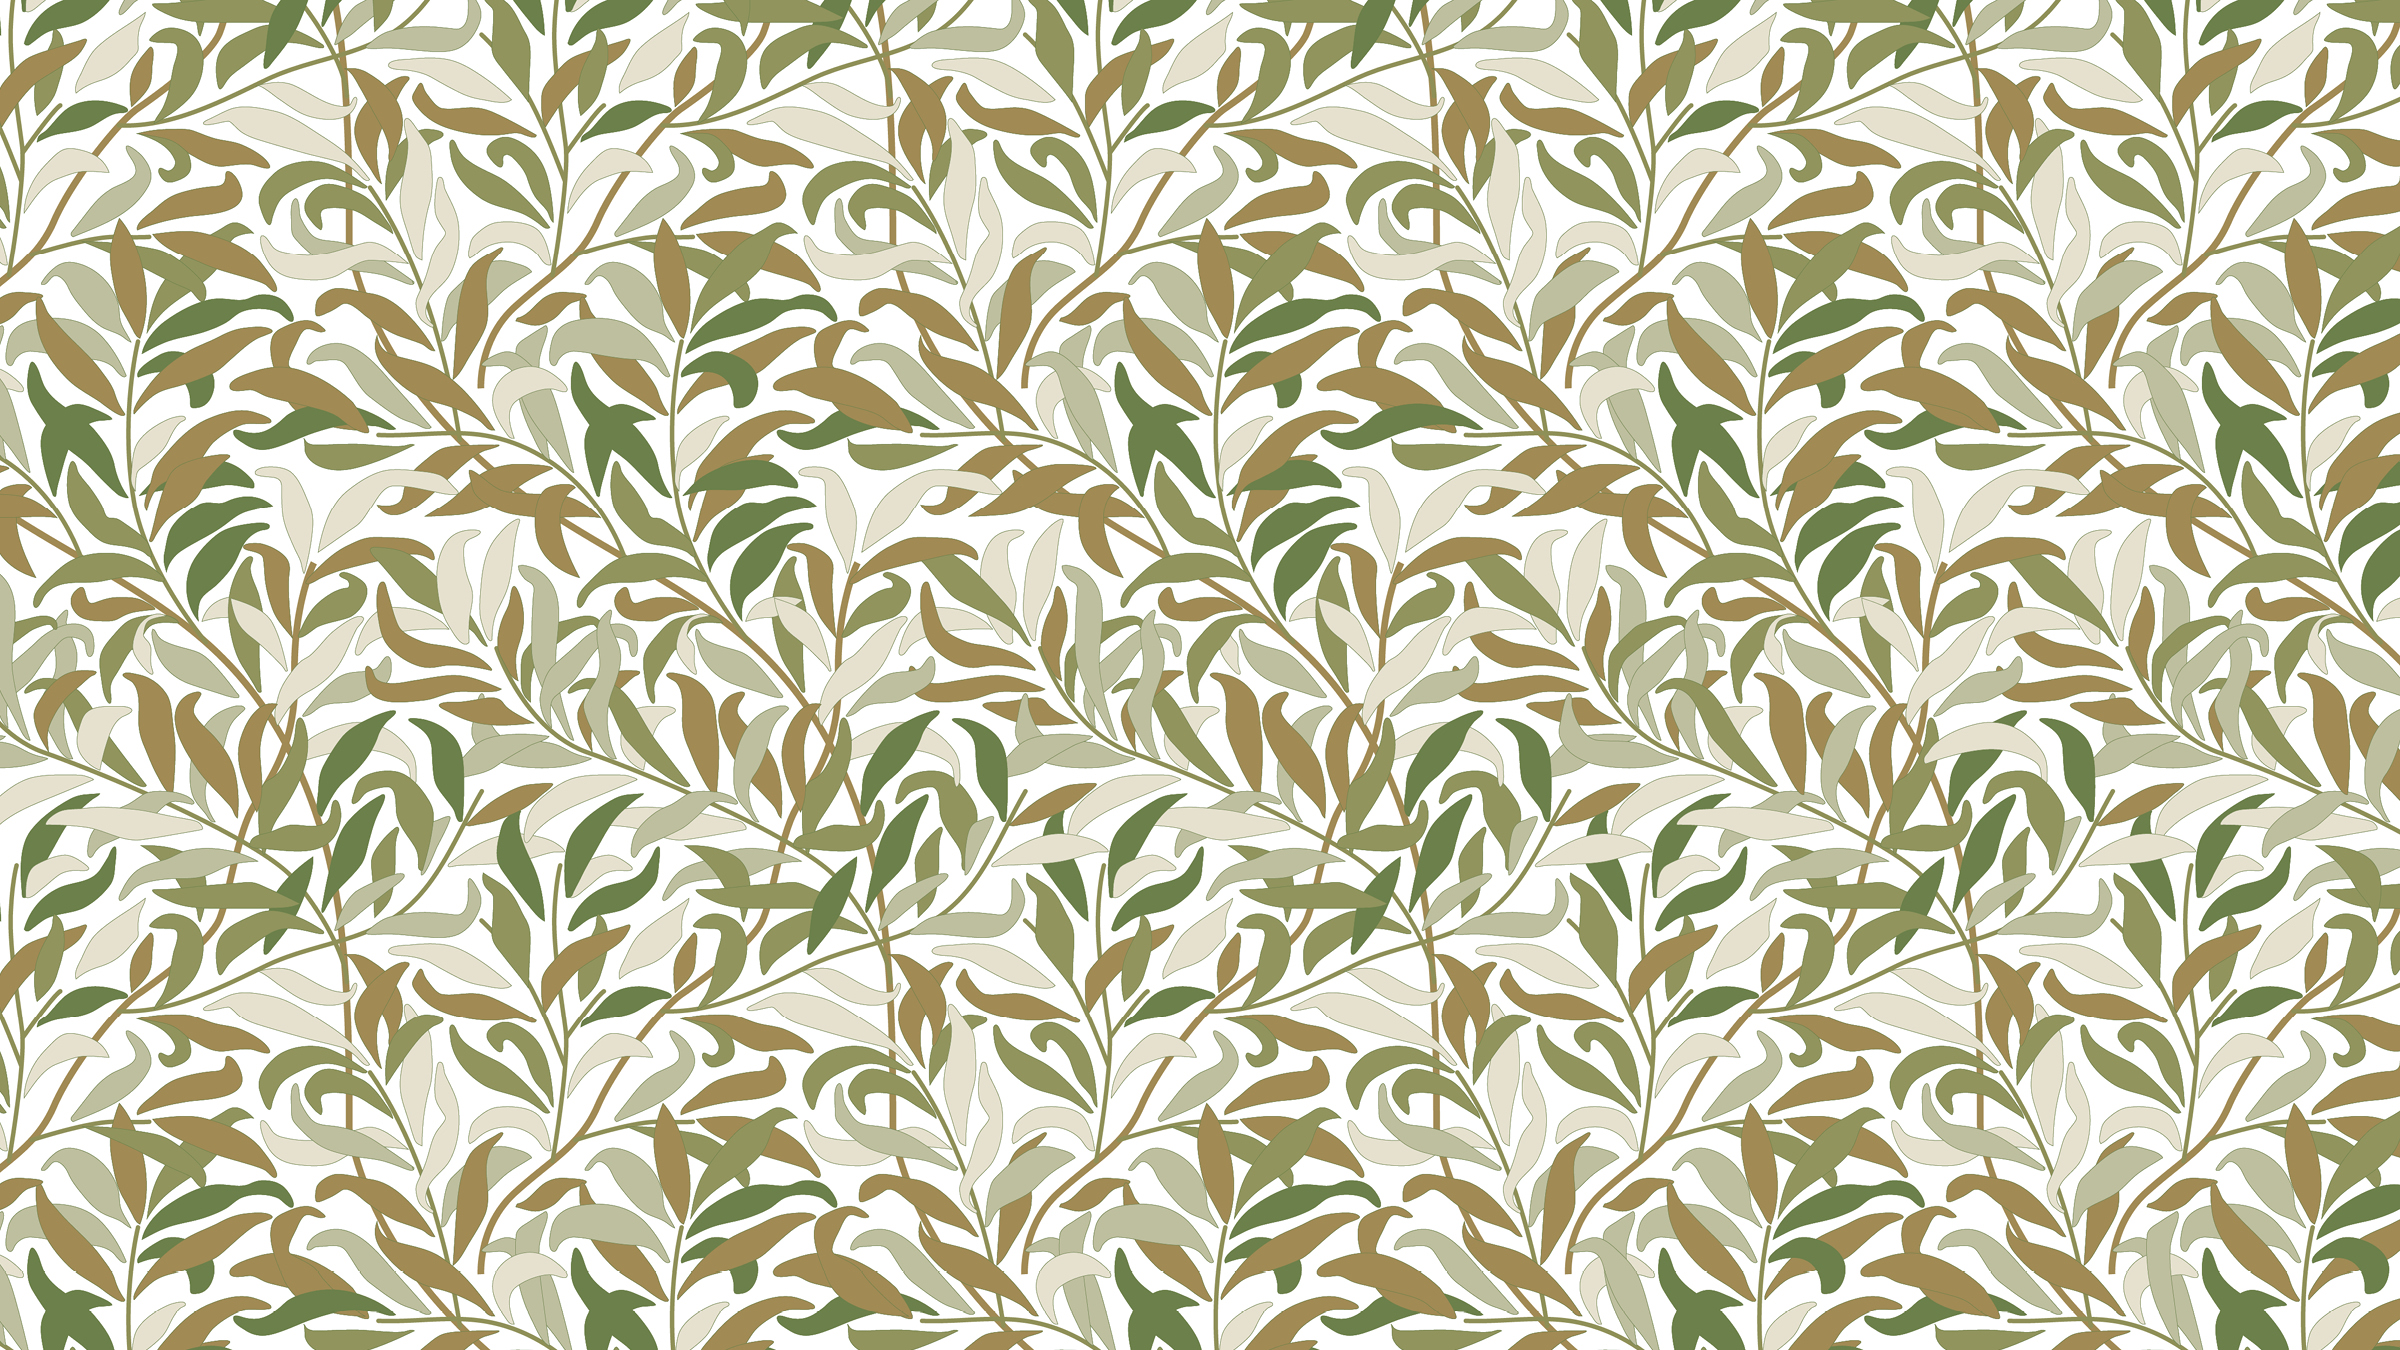 after william morris8.jpg